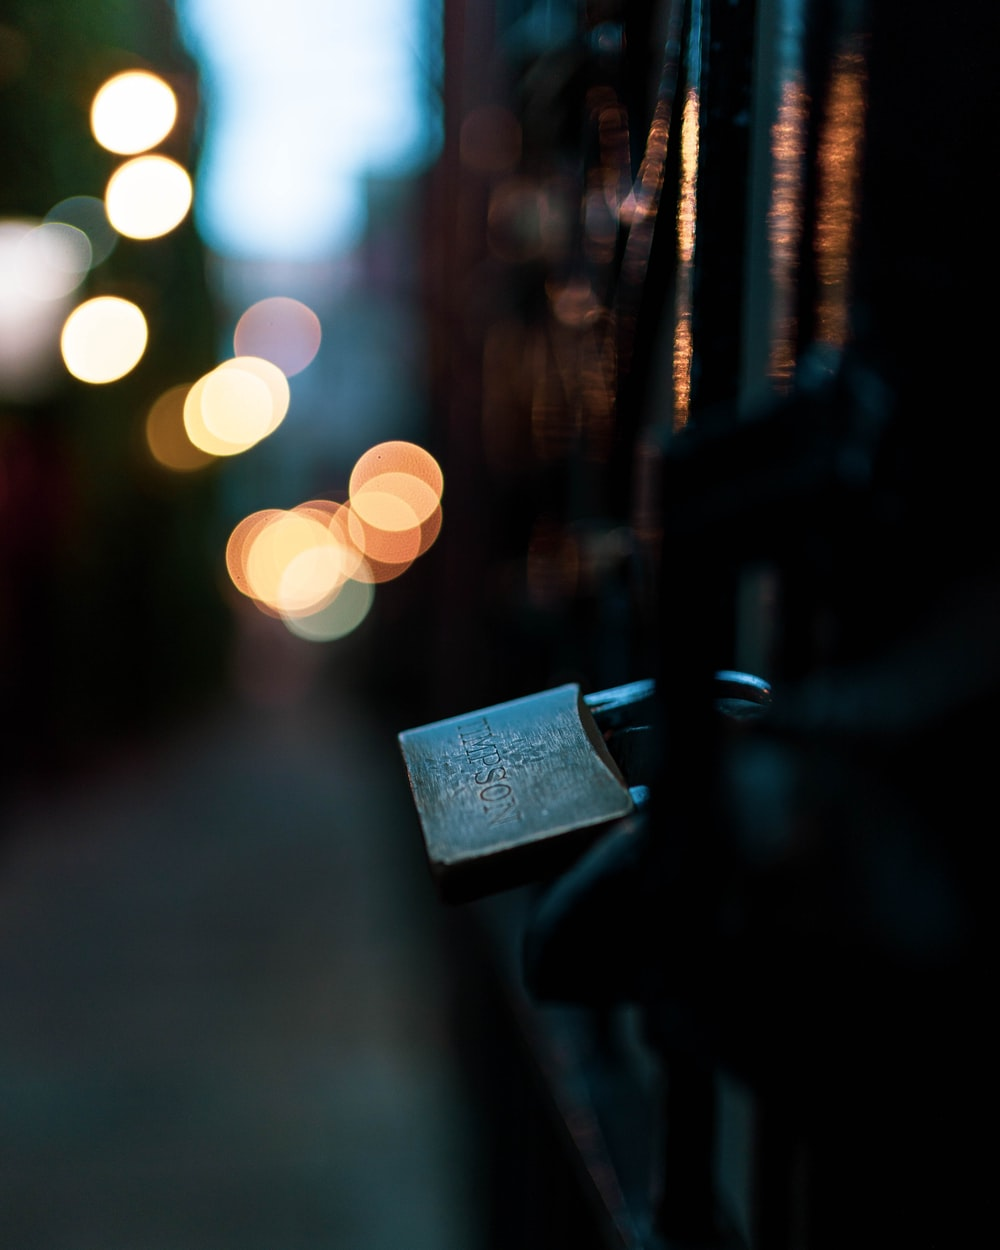 selective focus photography of padlock on fence